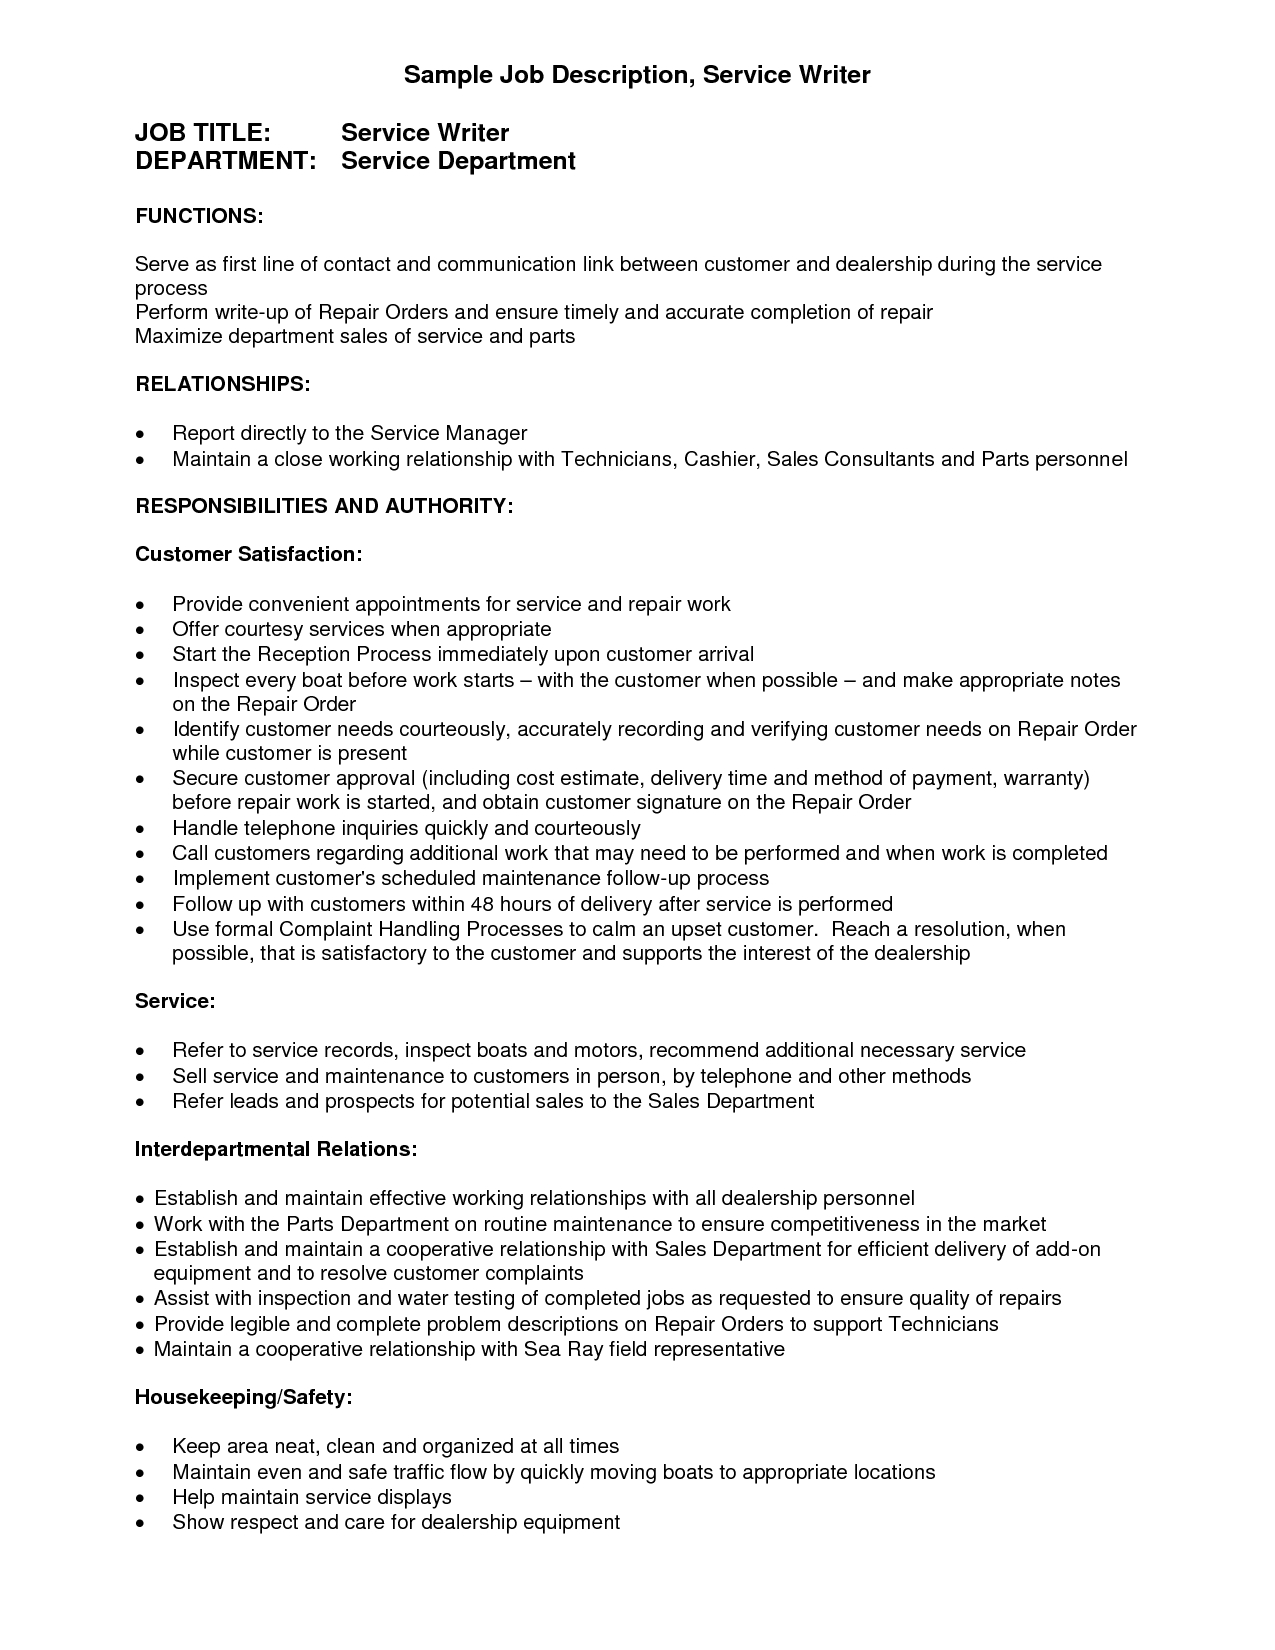 Pet Adoption Letter Template - Resume Writing Service Best Templatewriting A Resume Cover Letter